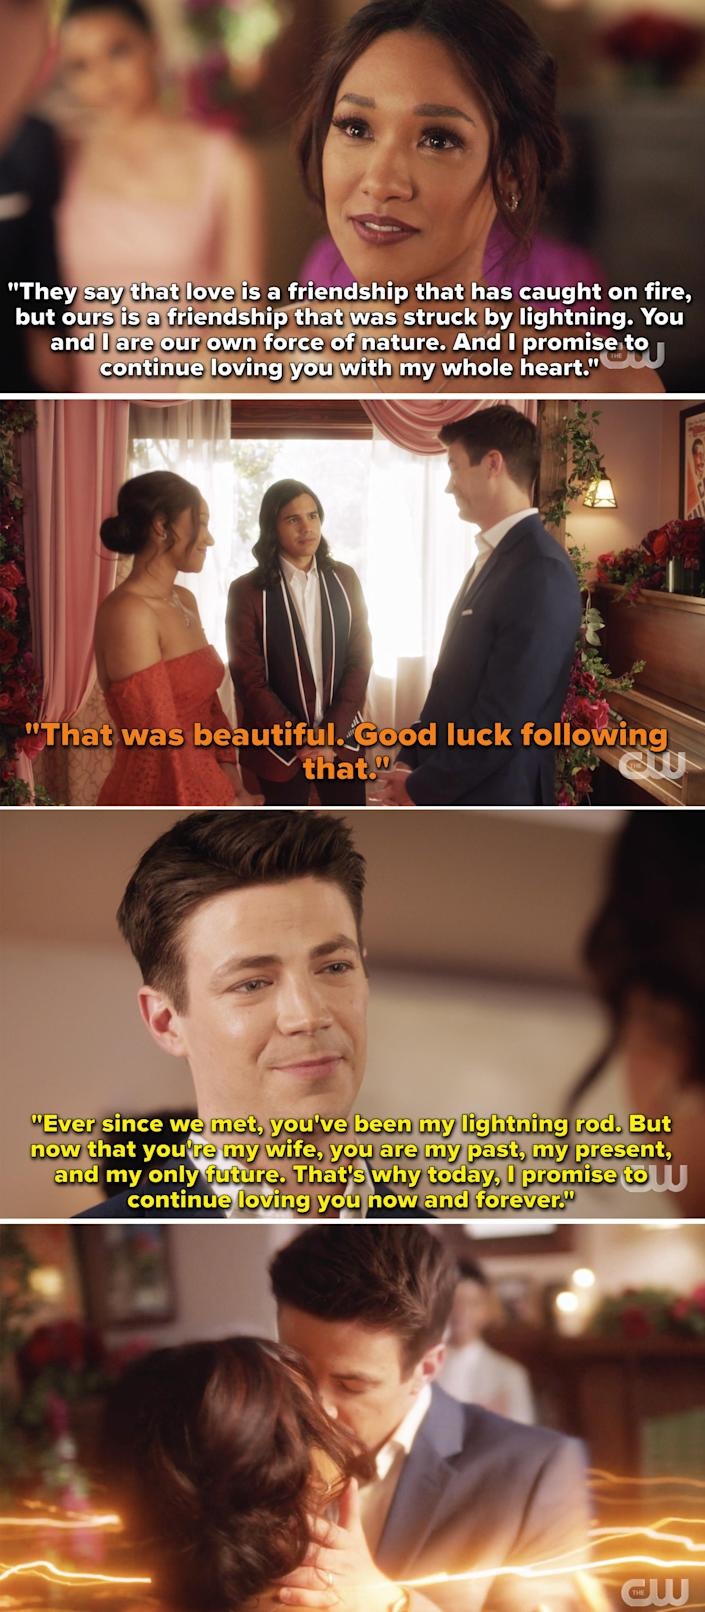 Barry and Iris reciting their new vows and promising to love each other